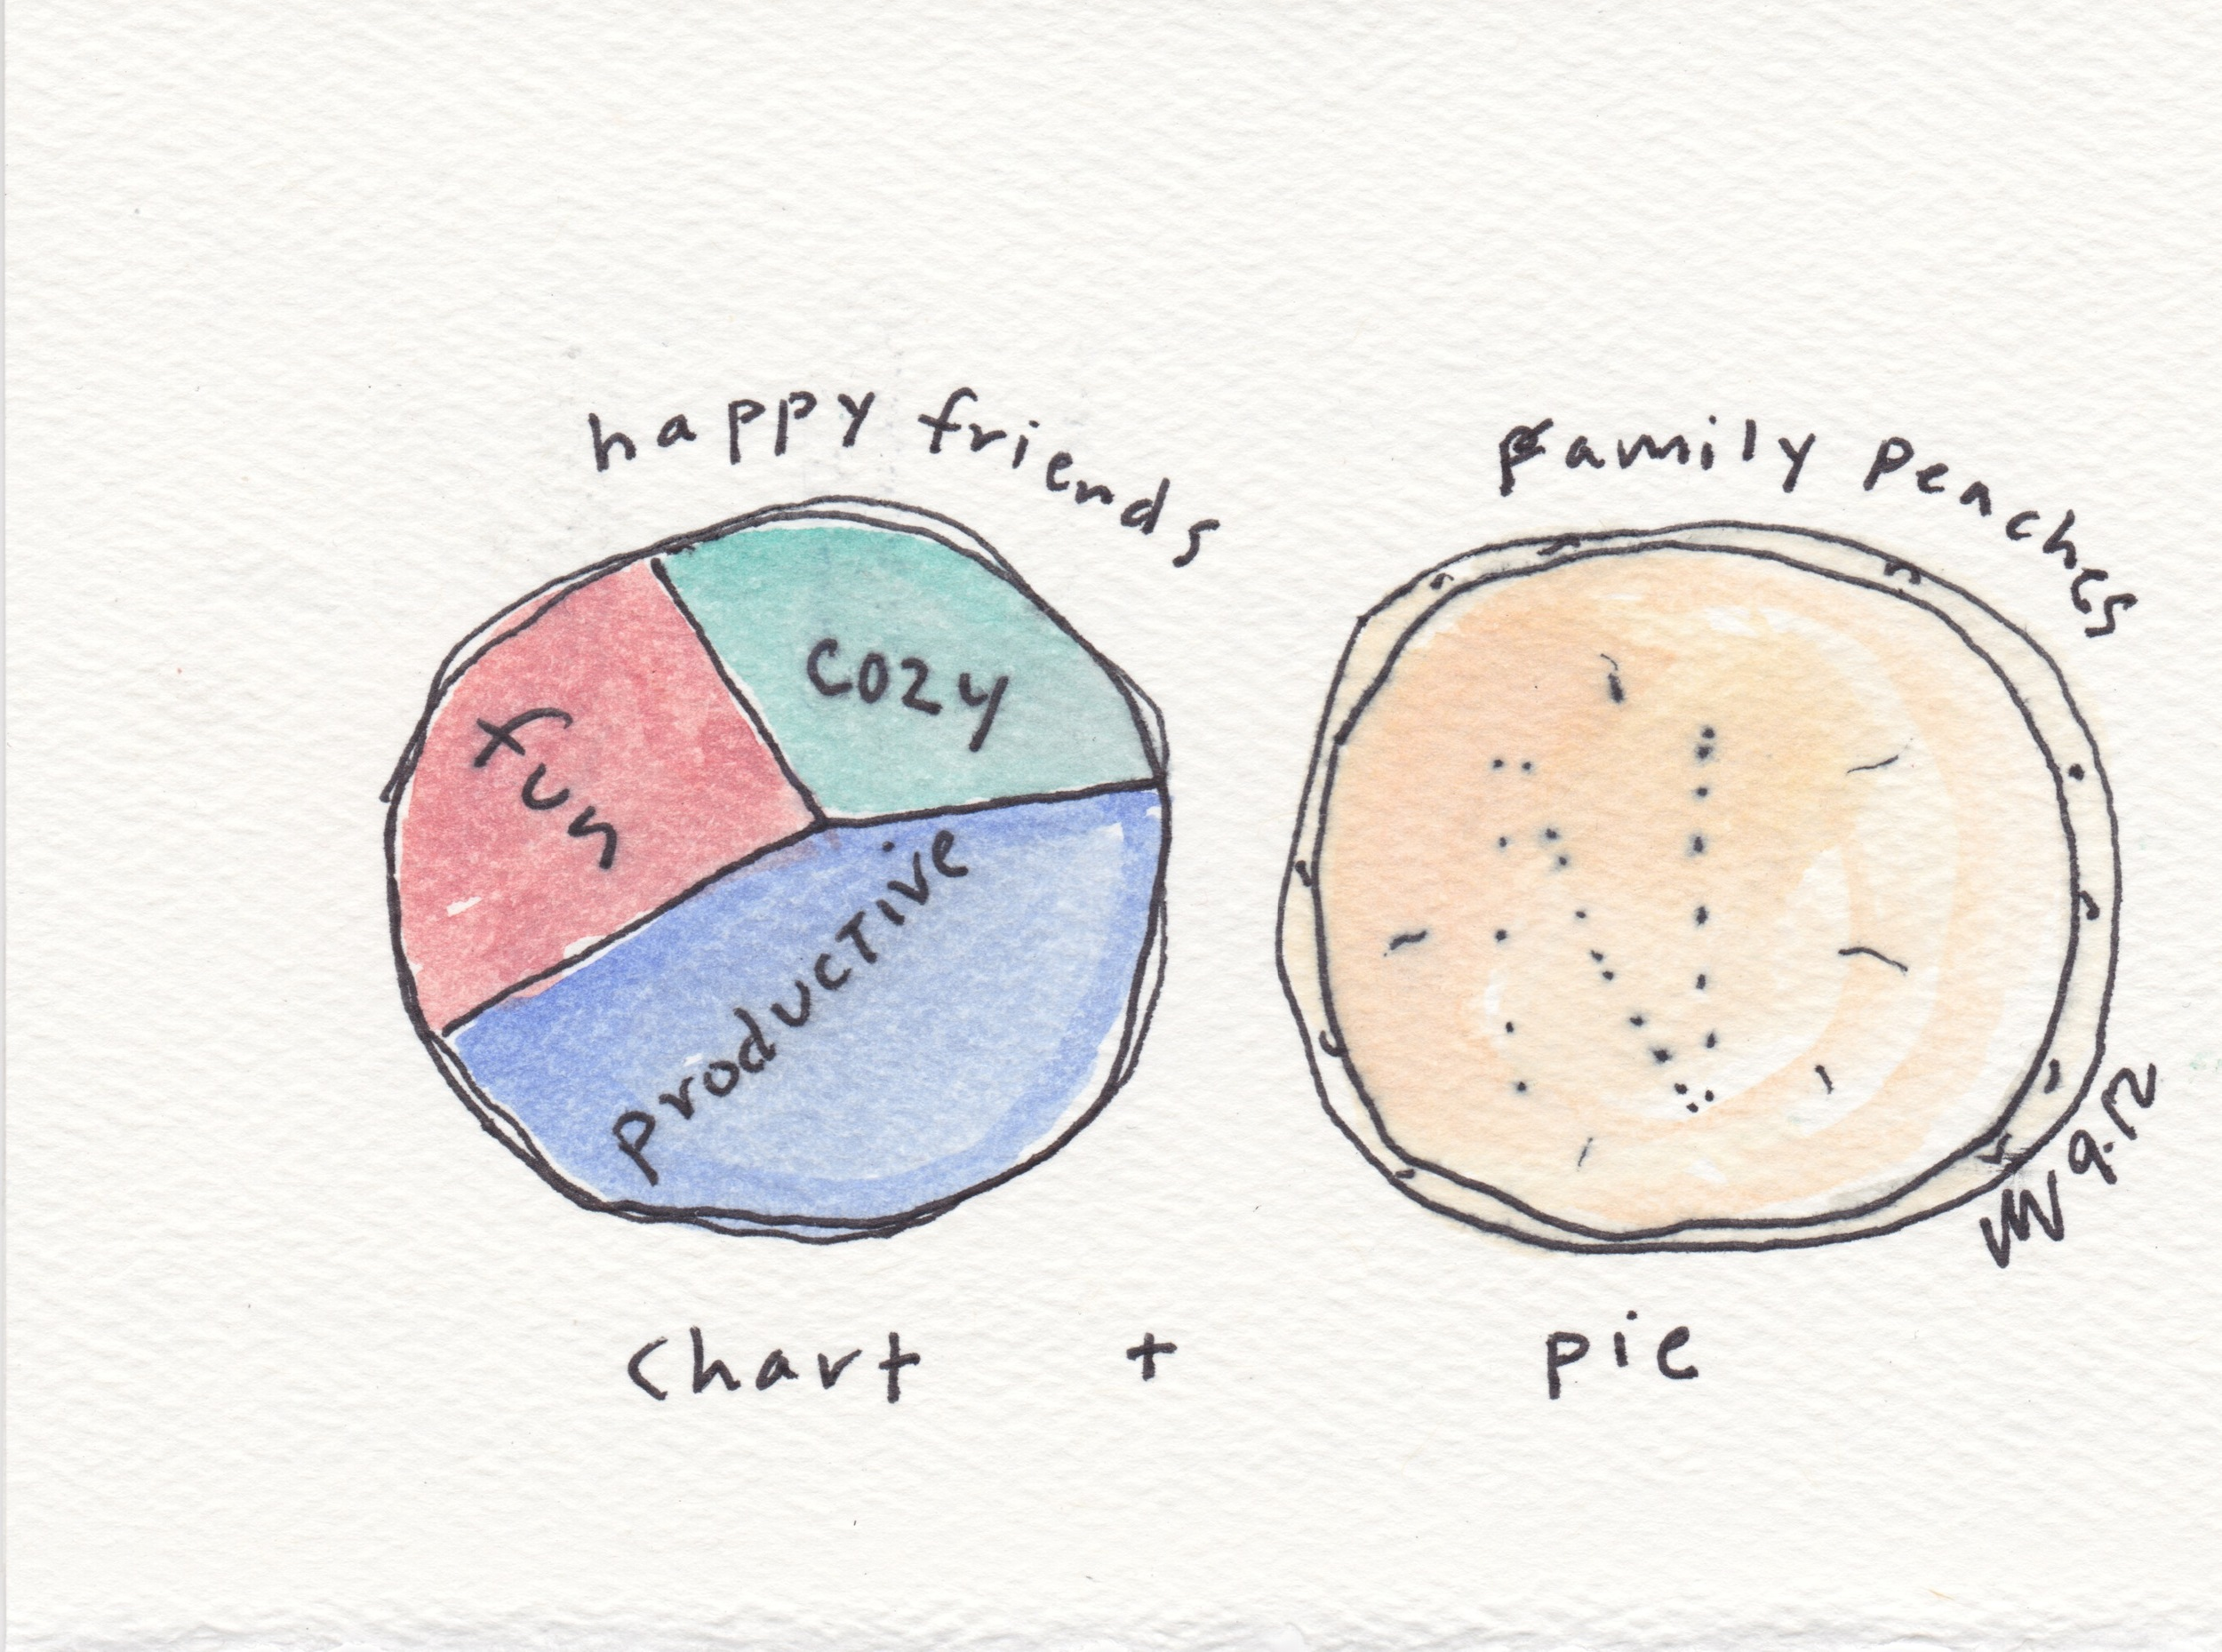 what could be better than pie + friends?